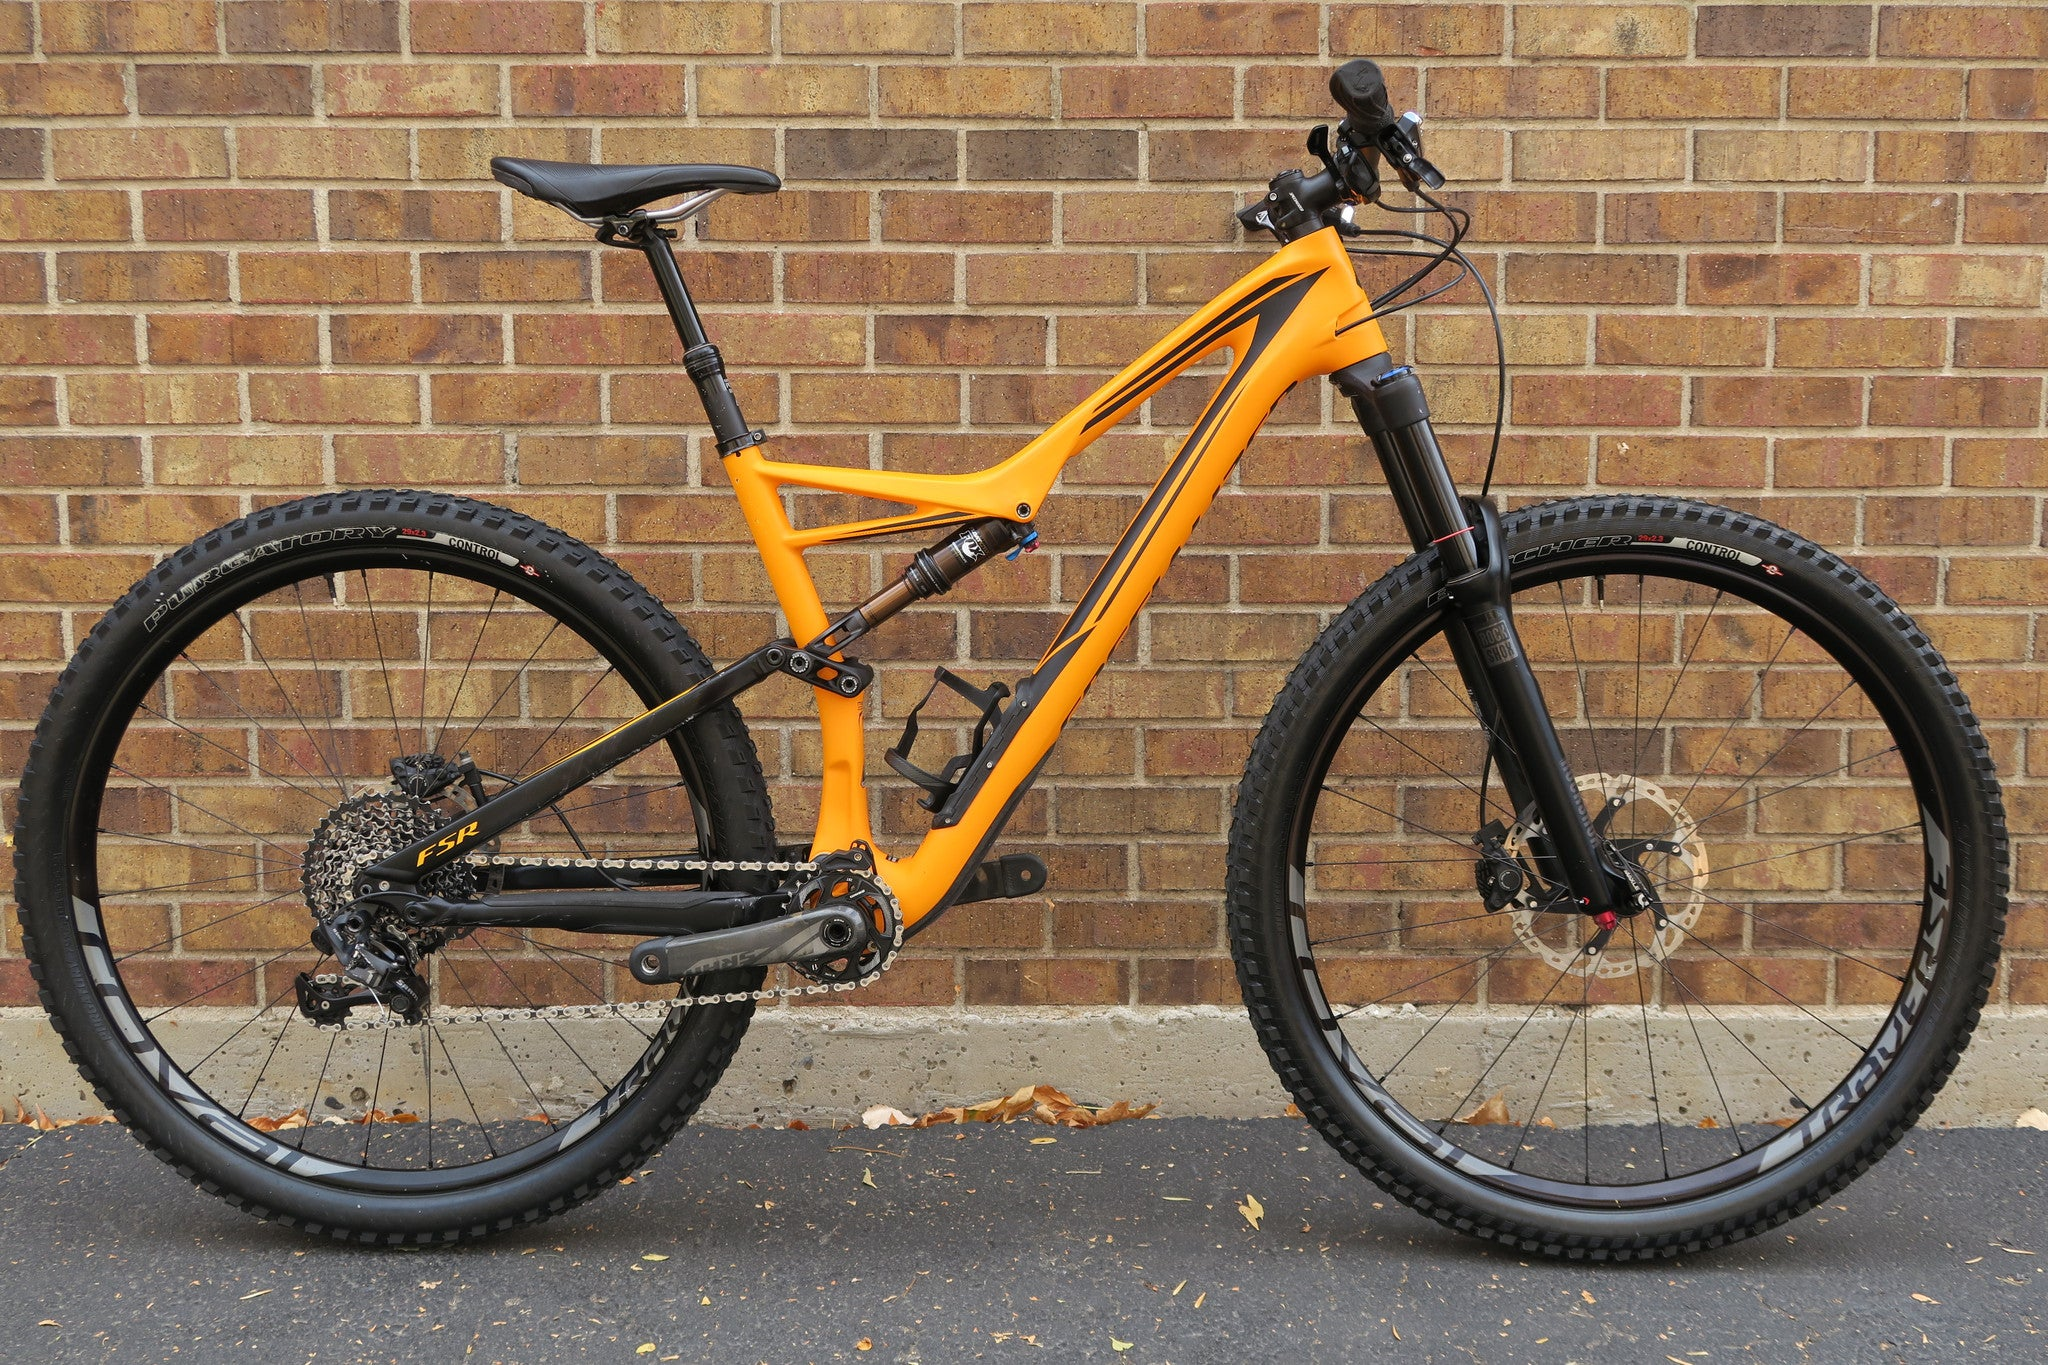 2016 SPECIALIZED STUMPJUMPER FSR EXPERT CARBON 29